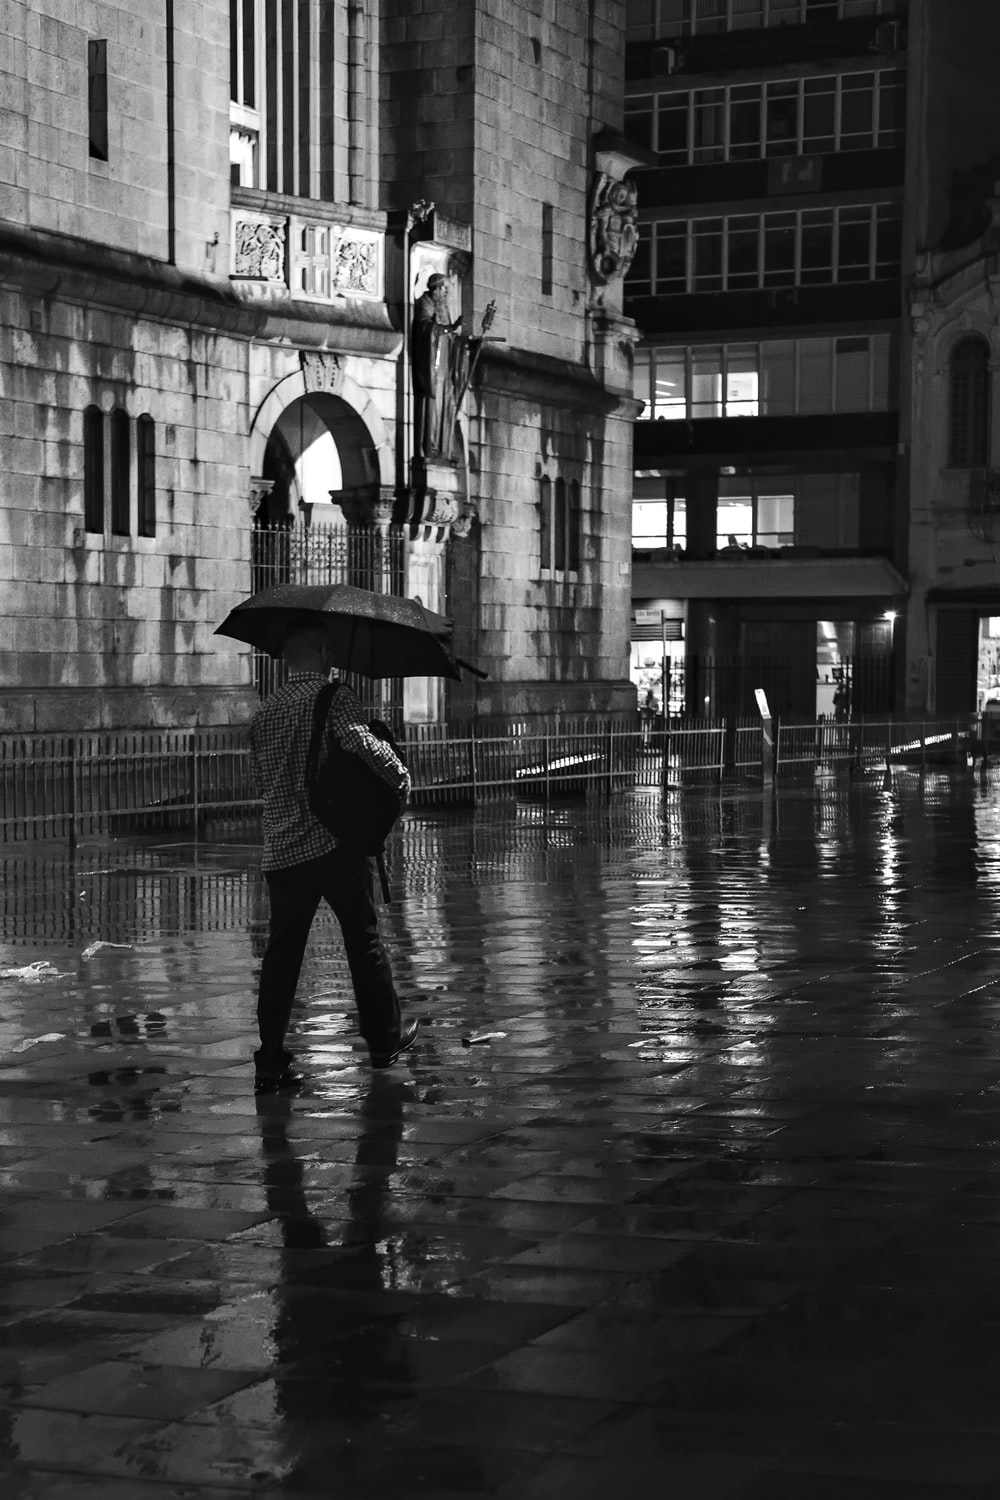 person walking and using umbrella near buildings